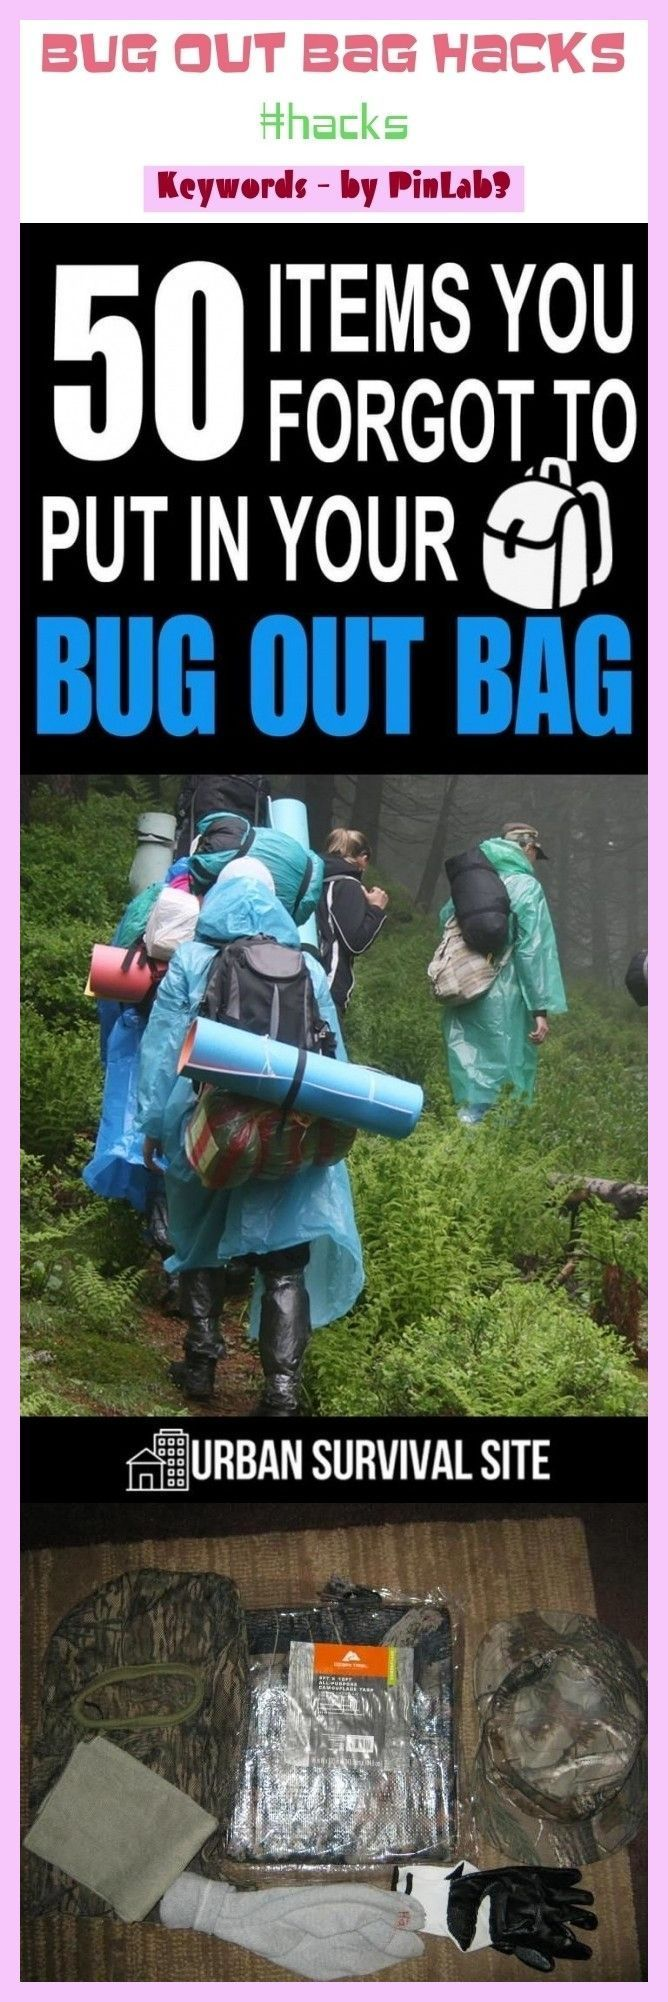 Knitting and crocheting  Bug out bag for sale, Bug out bag diy, Bug out bag food, Bug out bag storage, Bug out bag organizer, Bug out bag winter, Bug out bag ideas, Bug out bag 2019, Bug out bag hacks, Bug out bag list, Bug out bag family, Bug out bag organization, Bug out bag for women